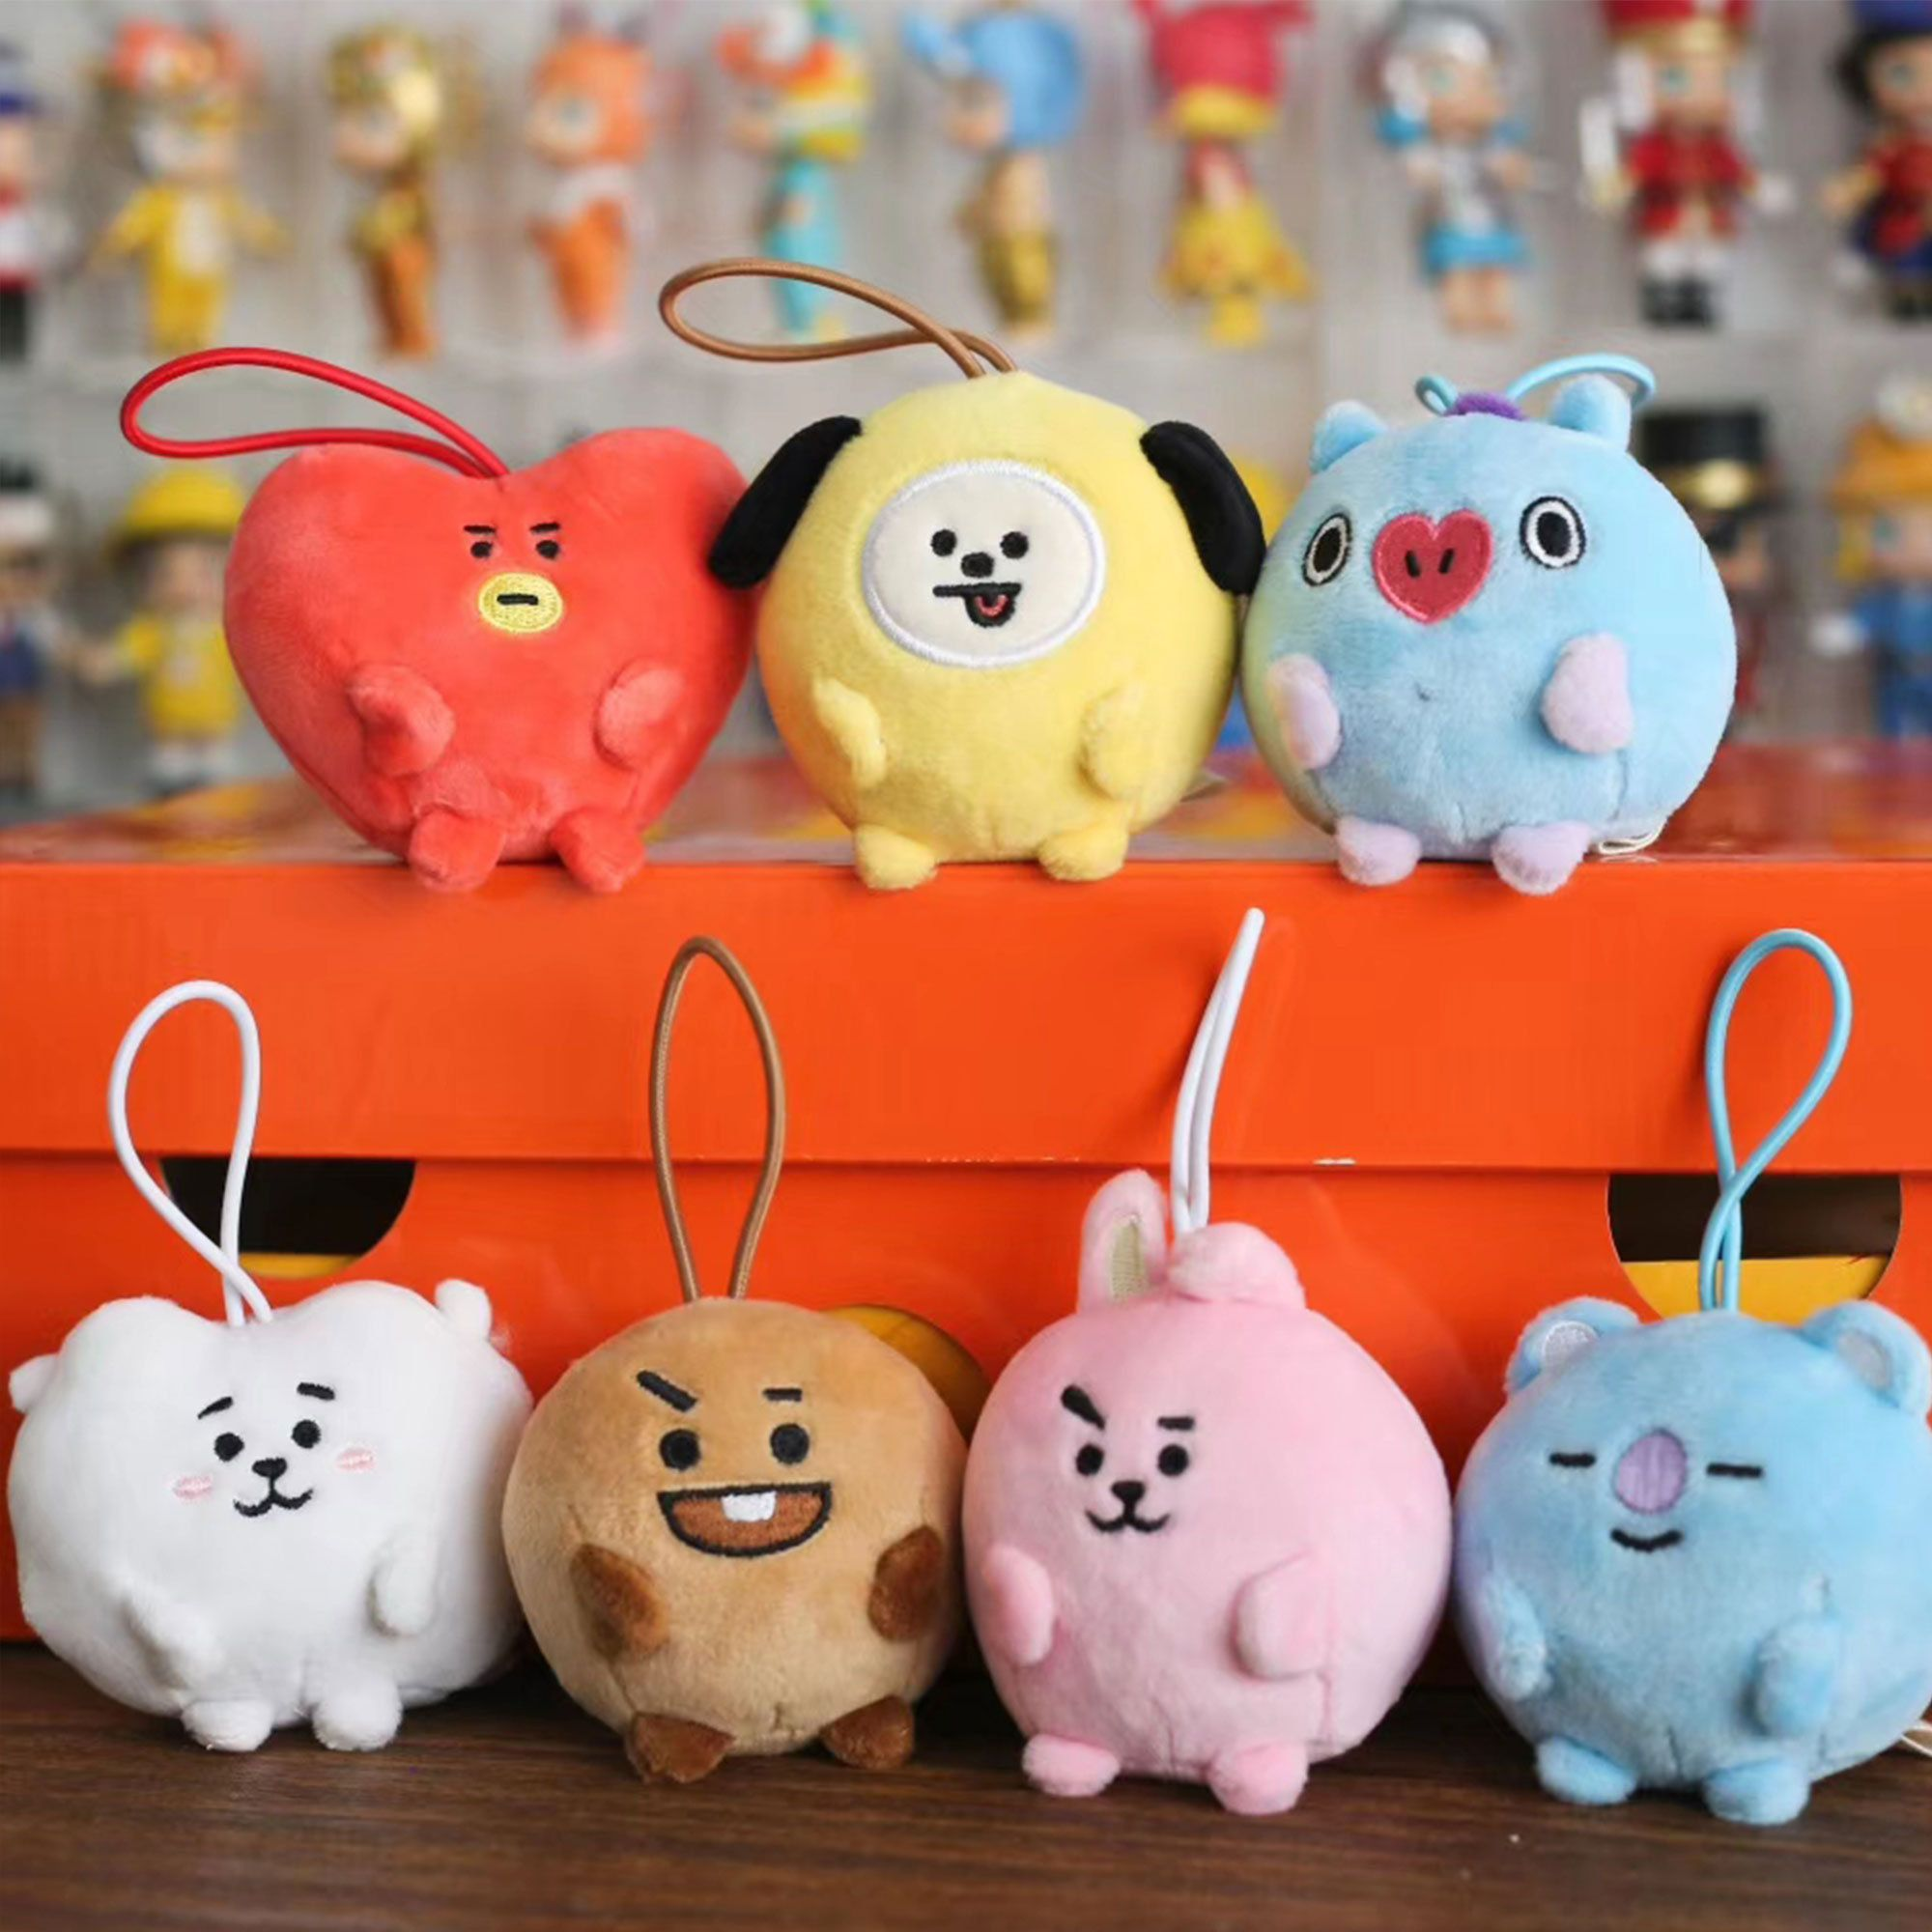 Bts Bt21 Mini Plush Bts Bt21 Mini Doll Charm Kpop Bts Bts Bt21 Keychain Bts Bt21 Gift Bts Bt21 Merch Unofficial By Ukistationery On Etsy In 2020 Doll Stands Dolls Mini